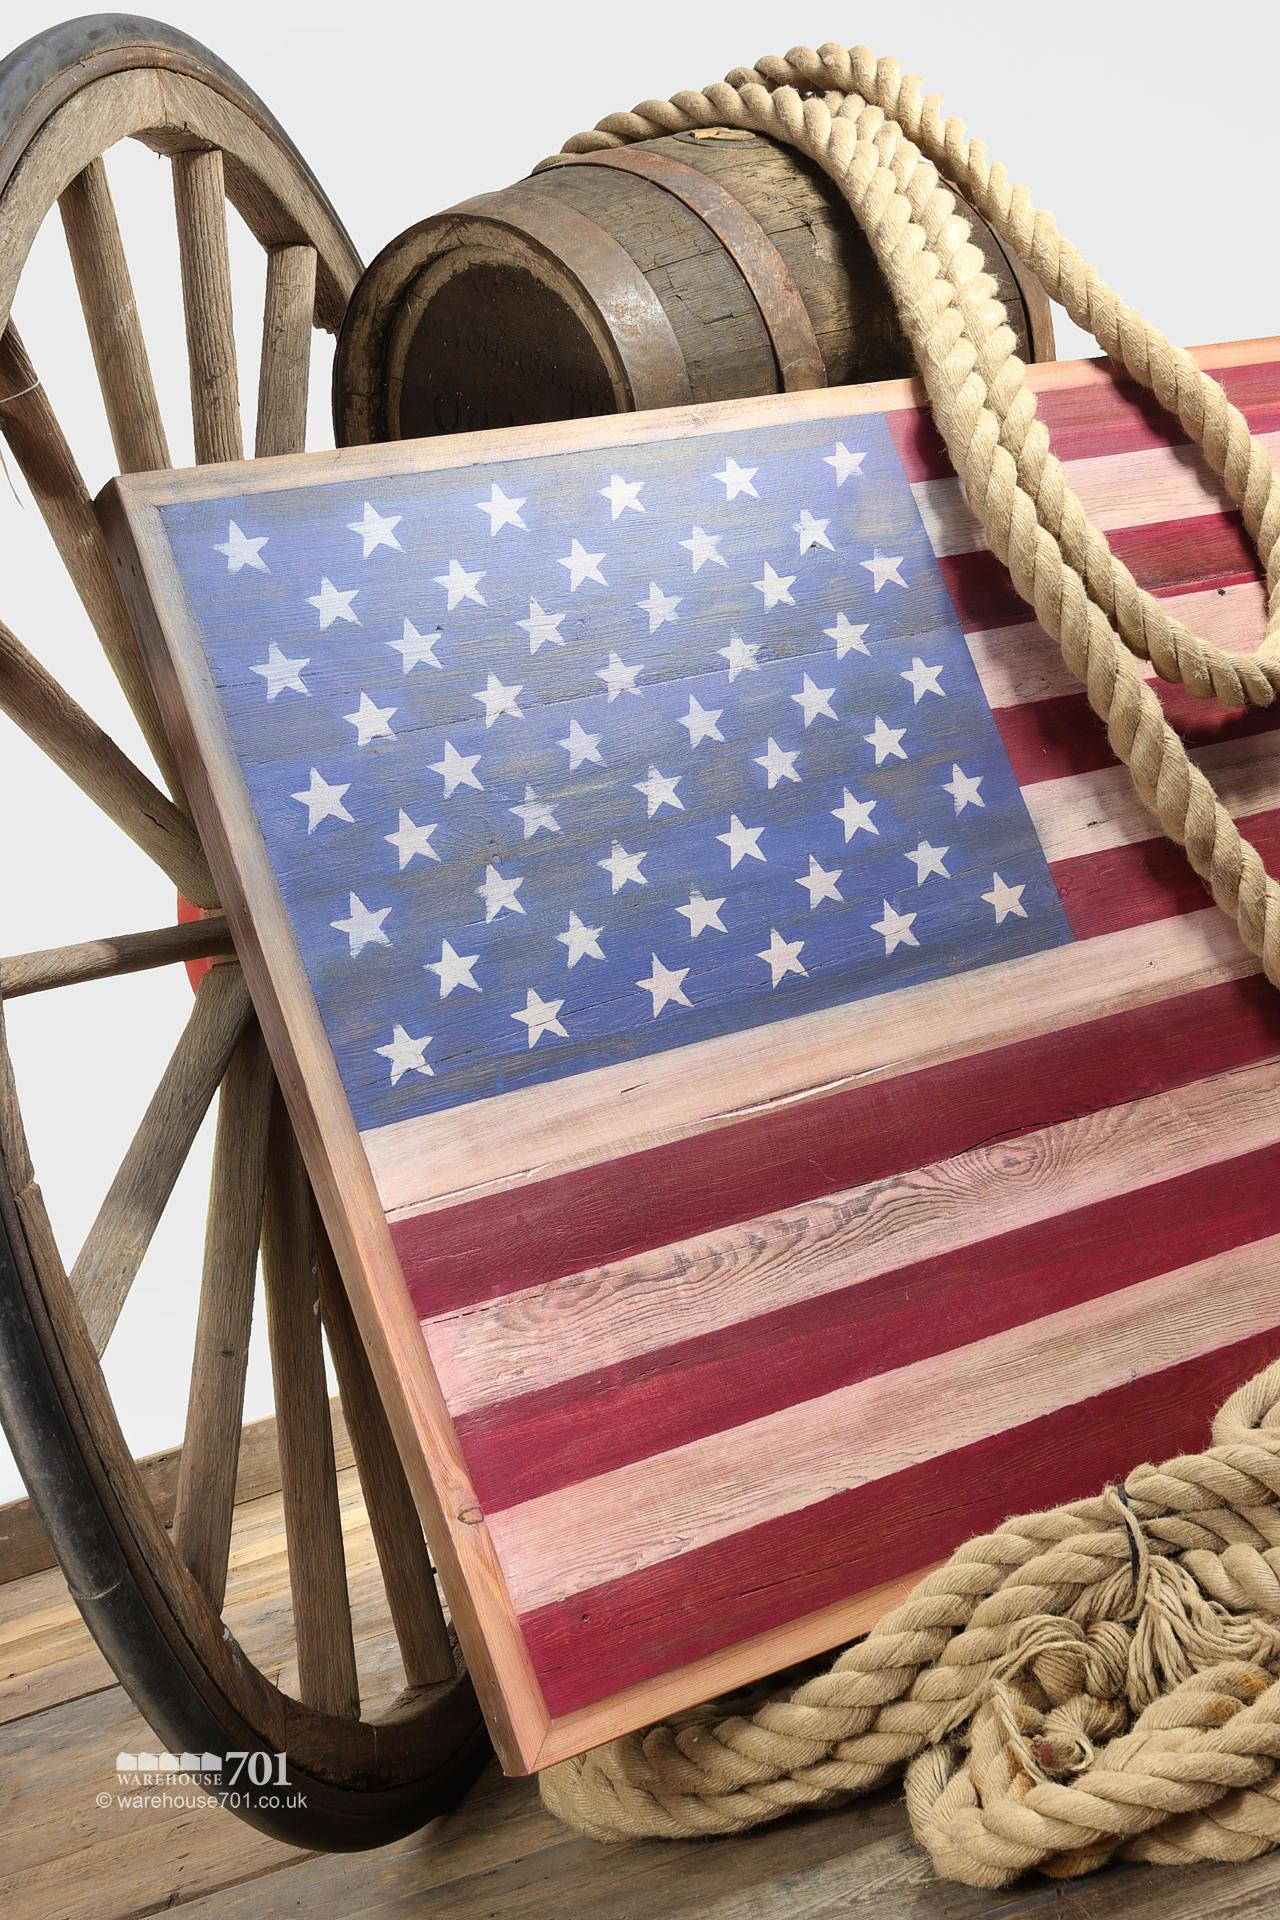 Stars and Stripes American Flag Hand Painted Wooden Wall Display